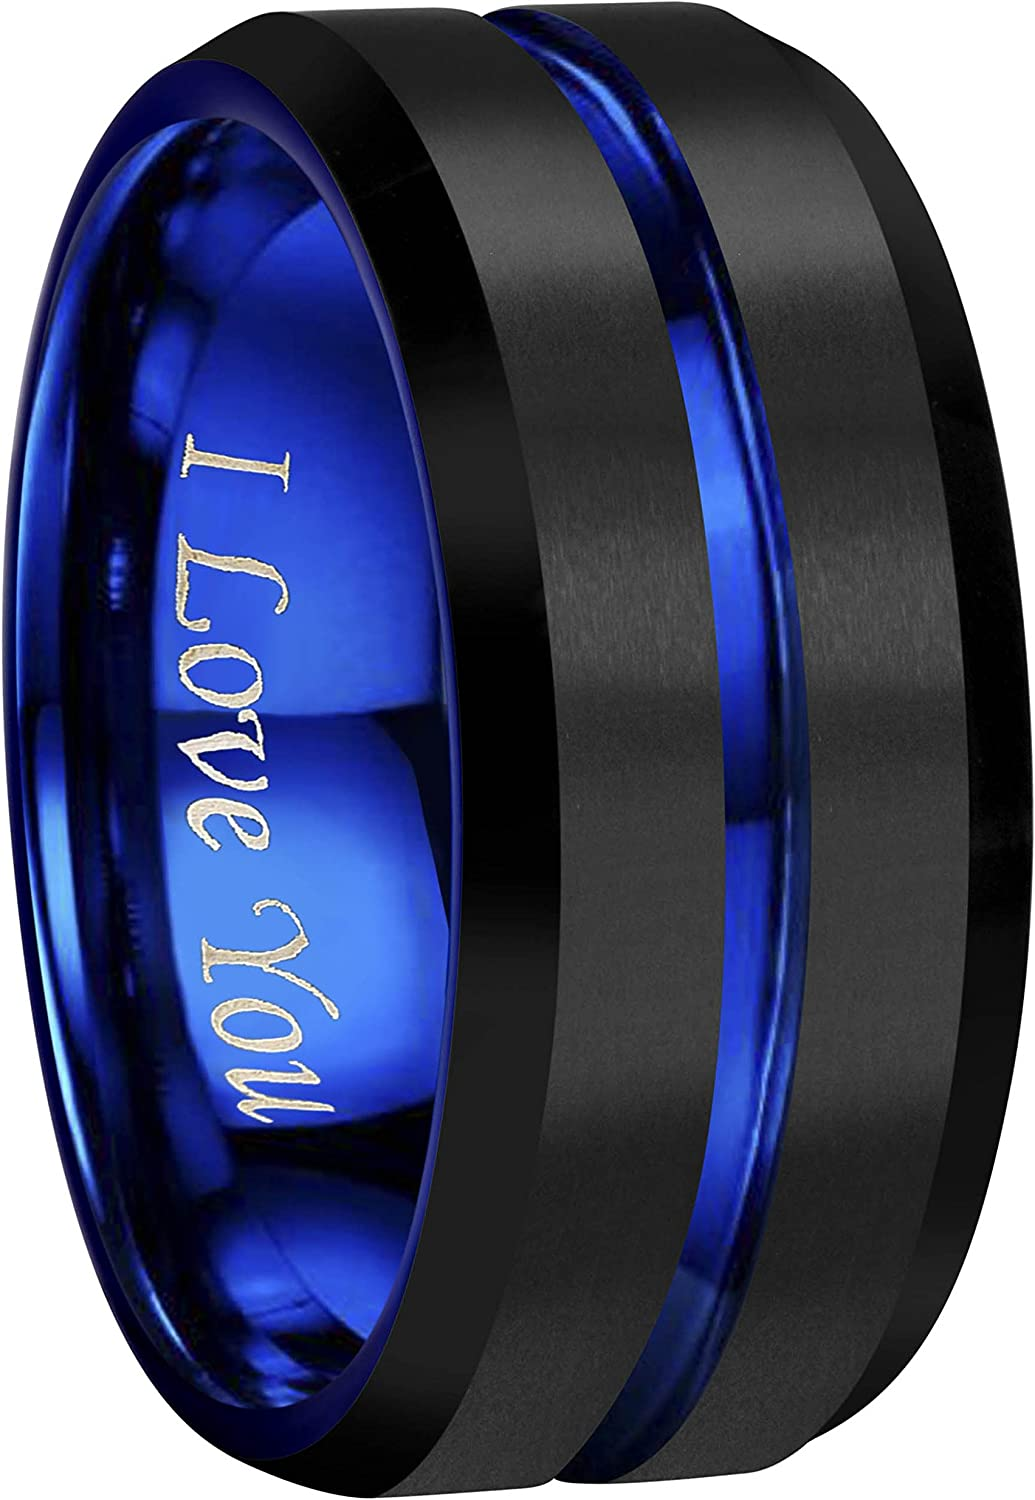 CROWNAL 4mm 6mm 8mm 10mm Blue/Rose Gold Groove Black Matte Finish Tungsten Carbide Wedding Band Ring Engraved I Love You Size 4 to 17